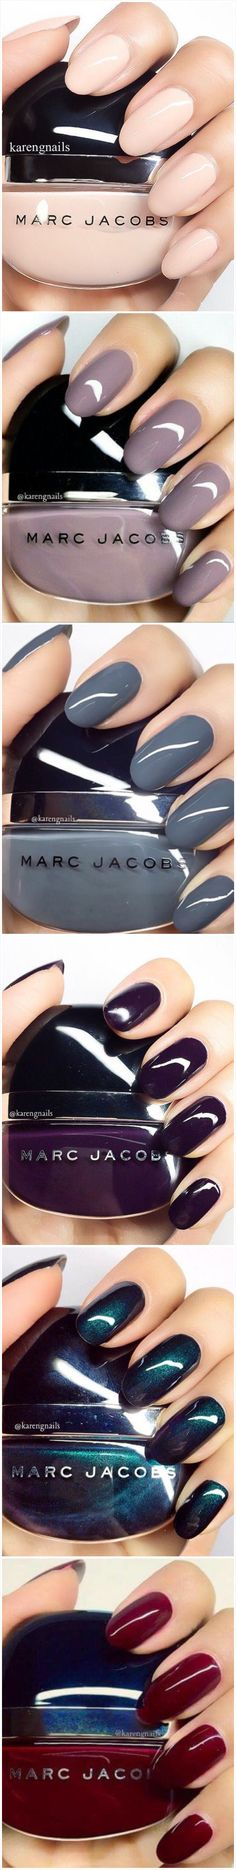 Marc Jacobs Nail Color Swatches